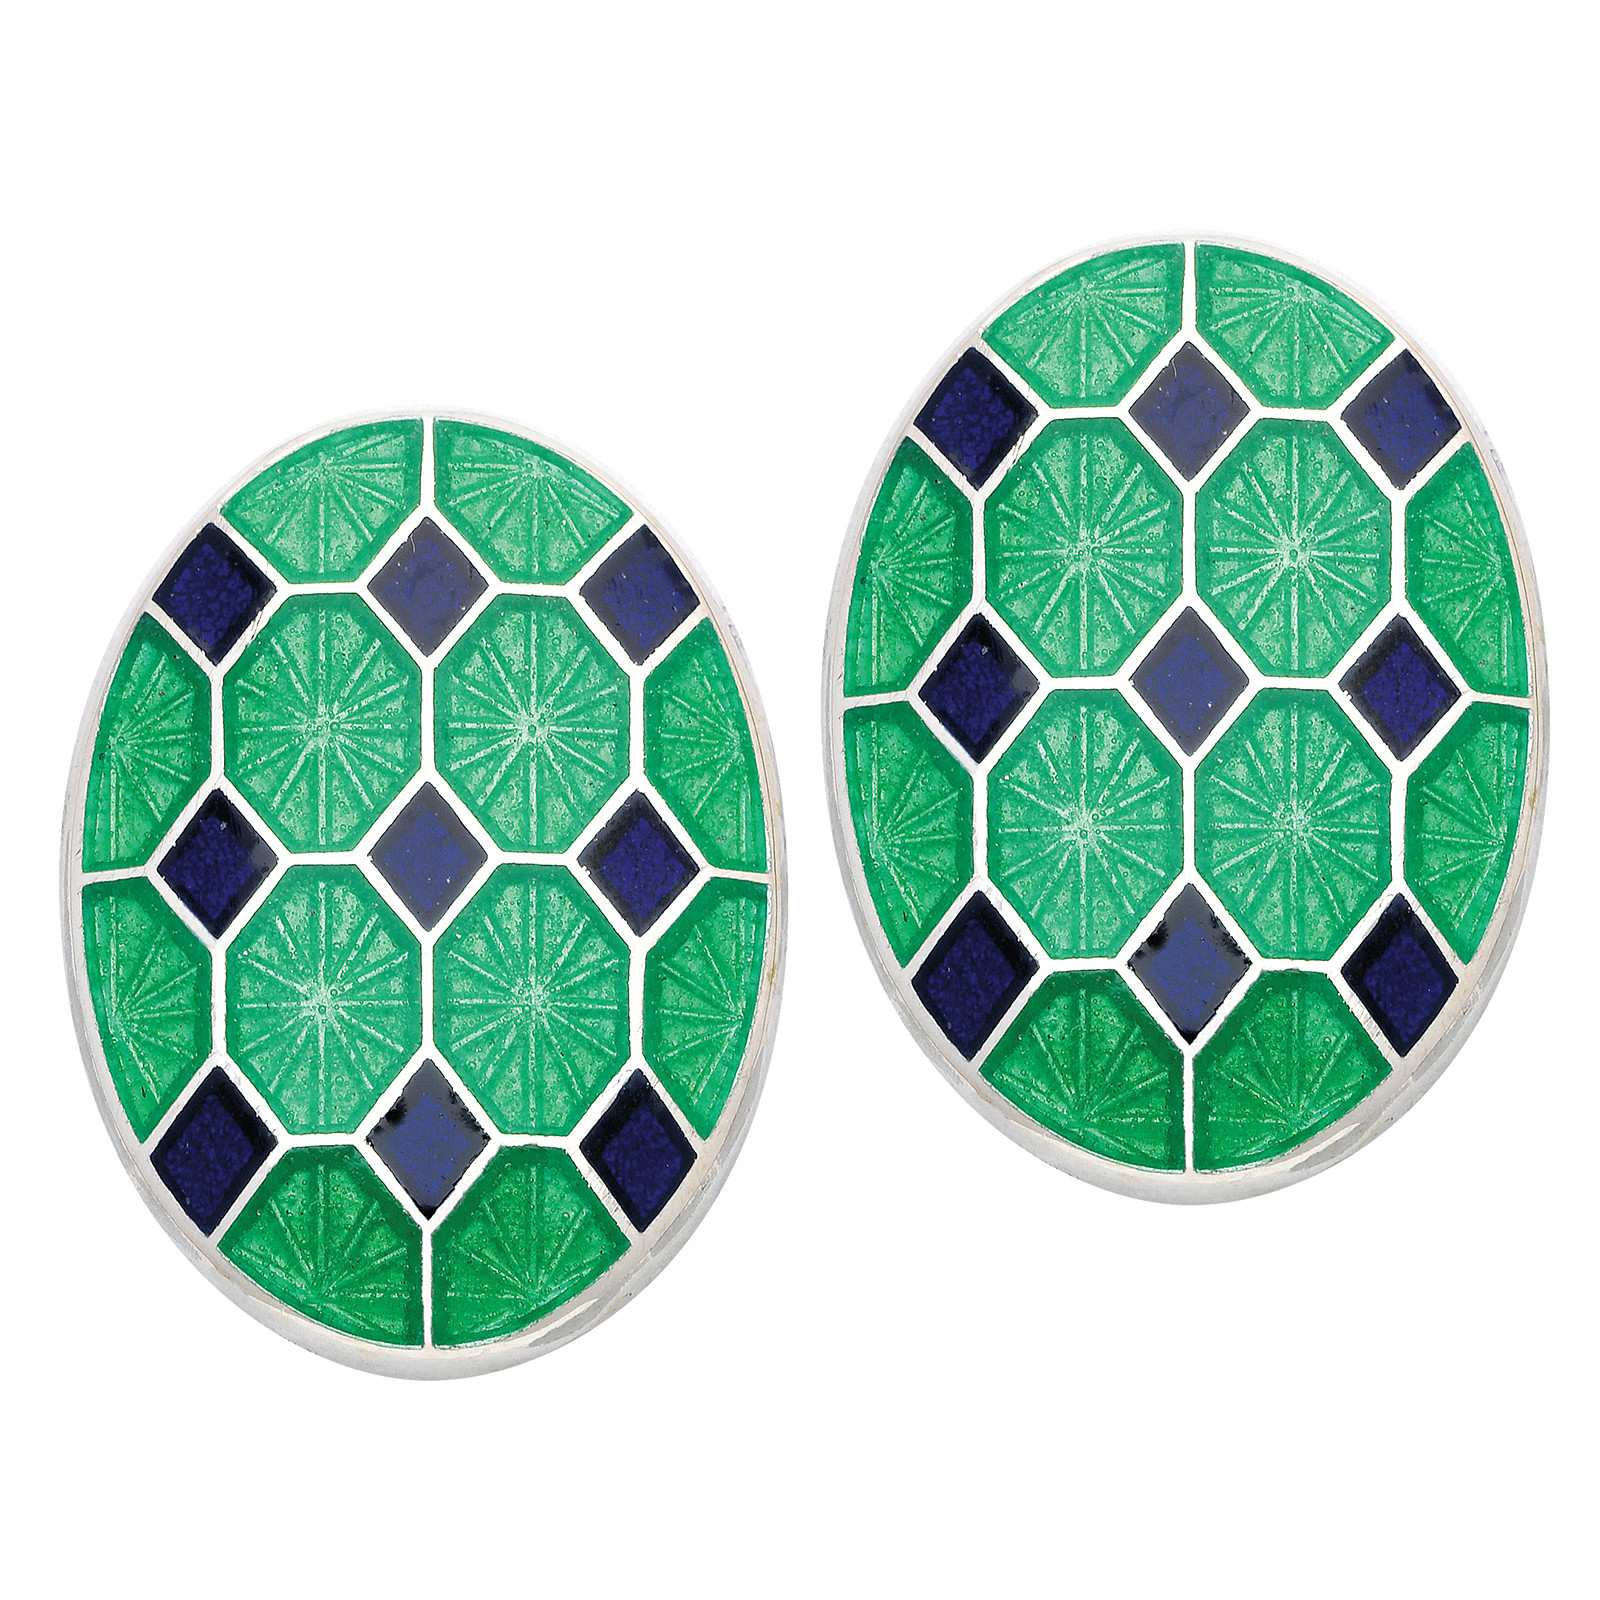 New Deakin & Francis Enamel Patterned Cufflinks